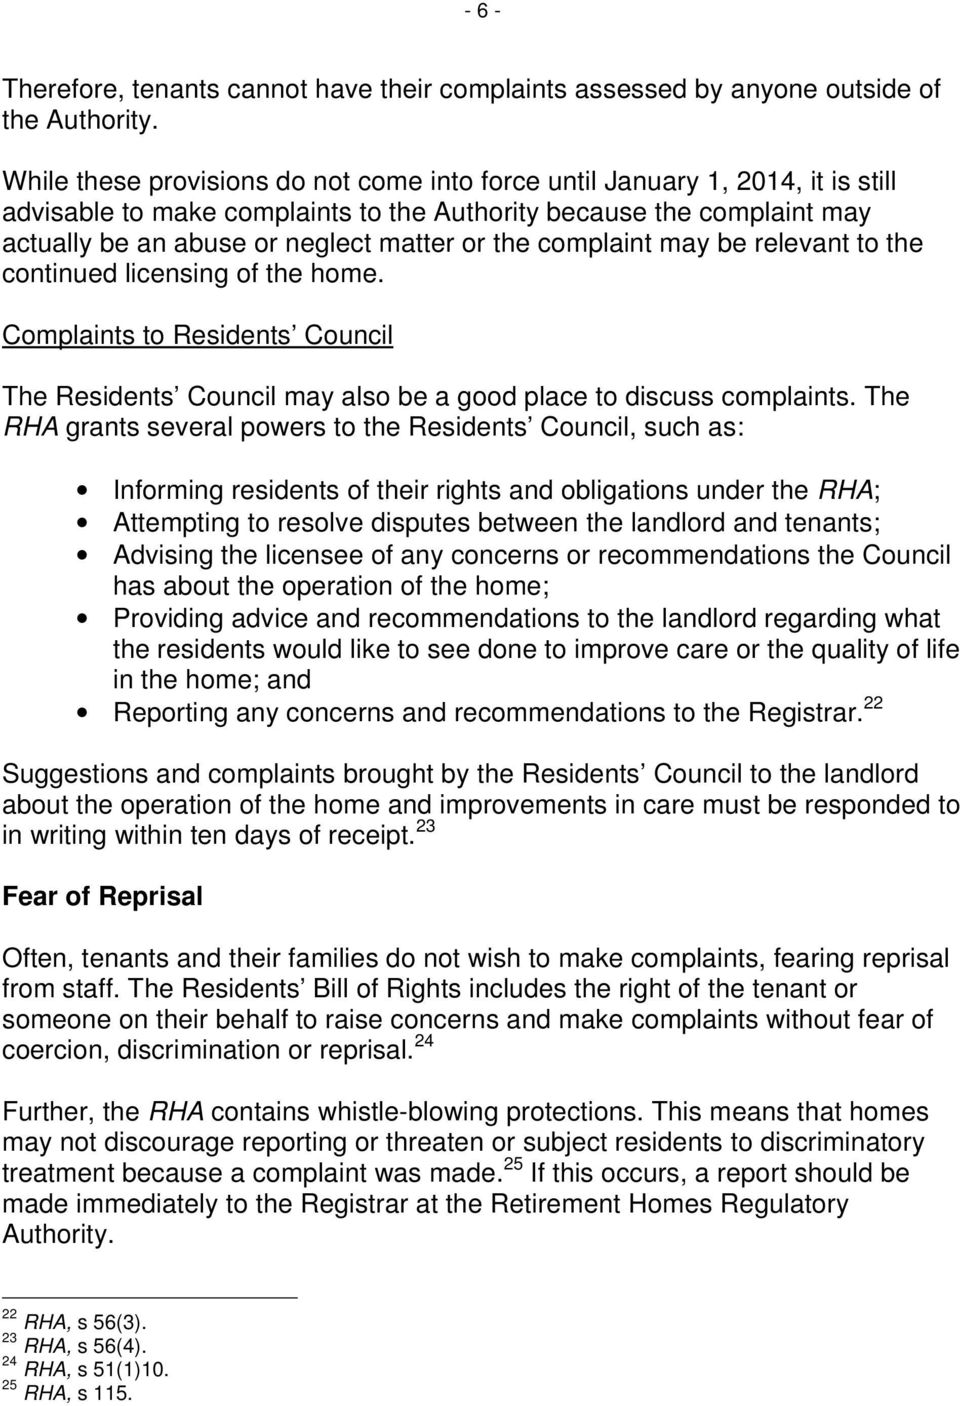 complaint may be relevant to the continued licensing of the home. Complaints to Residents Council The Residents Council may also be a good place to discuss complaints.